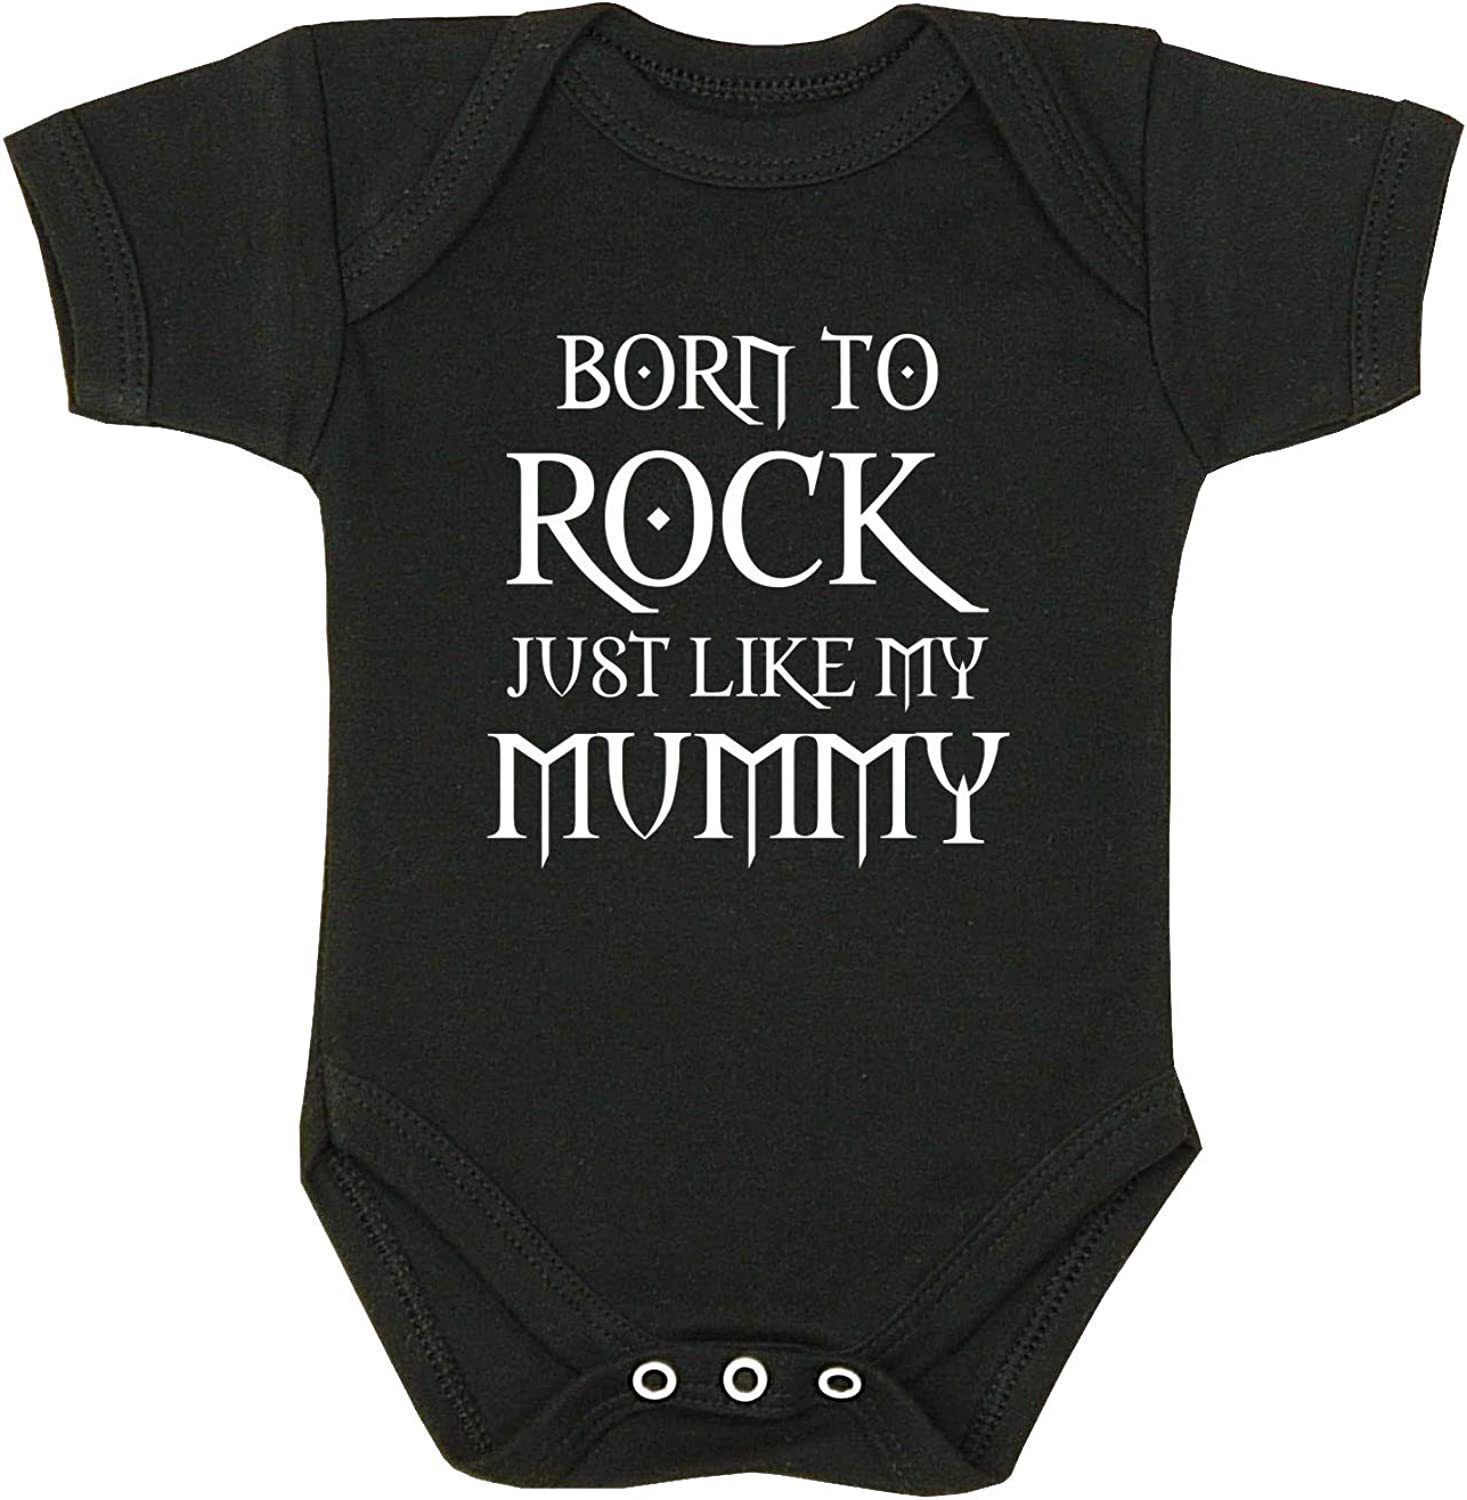 12mth Mummy Rocks Bodysuit Vest Baby Clothes Fun Slogan Girls Boys Mum Gift NB